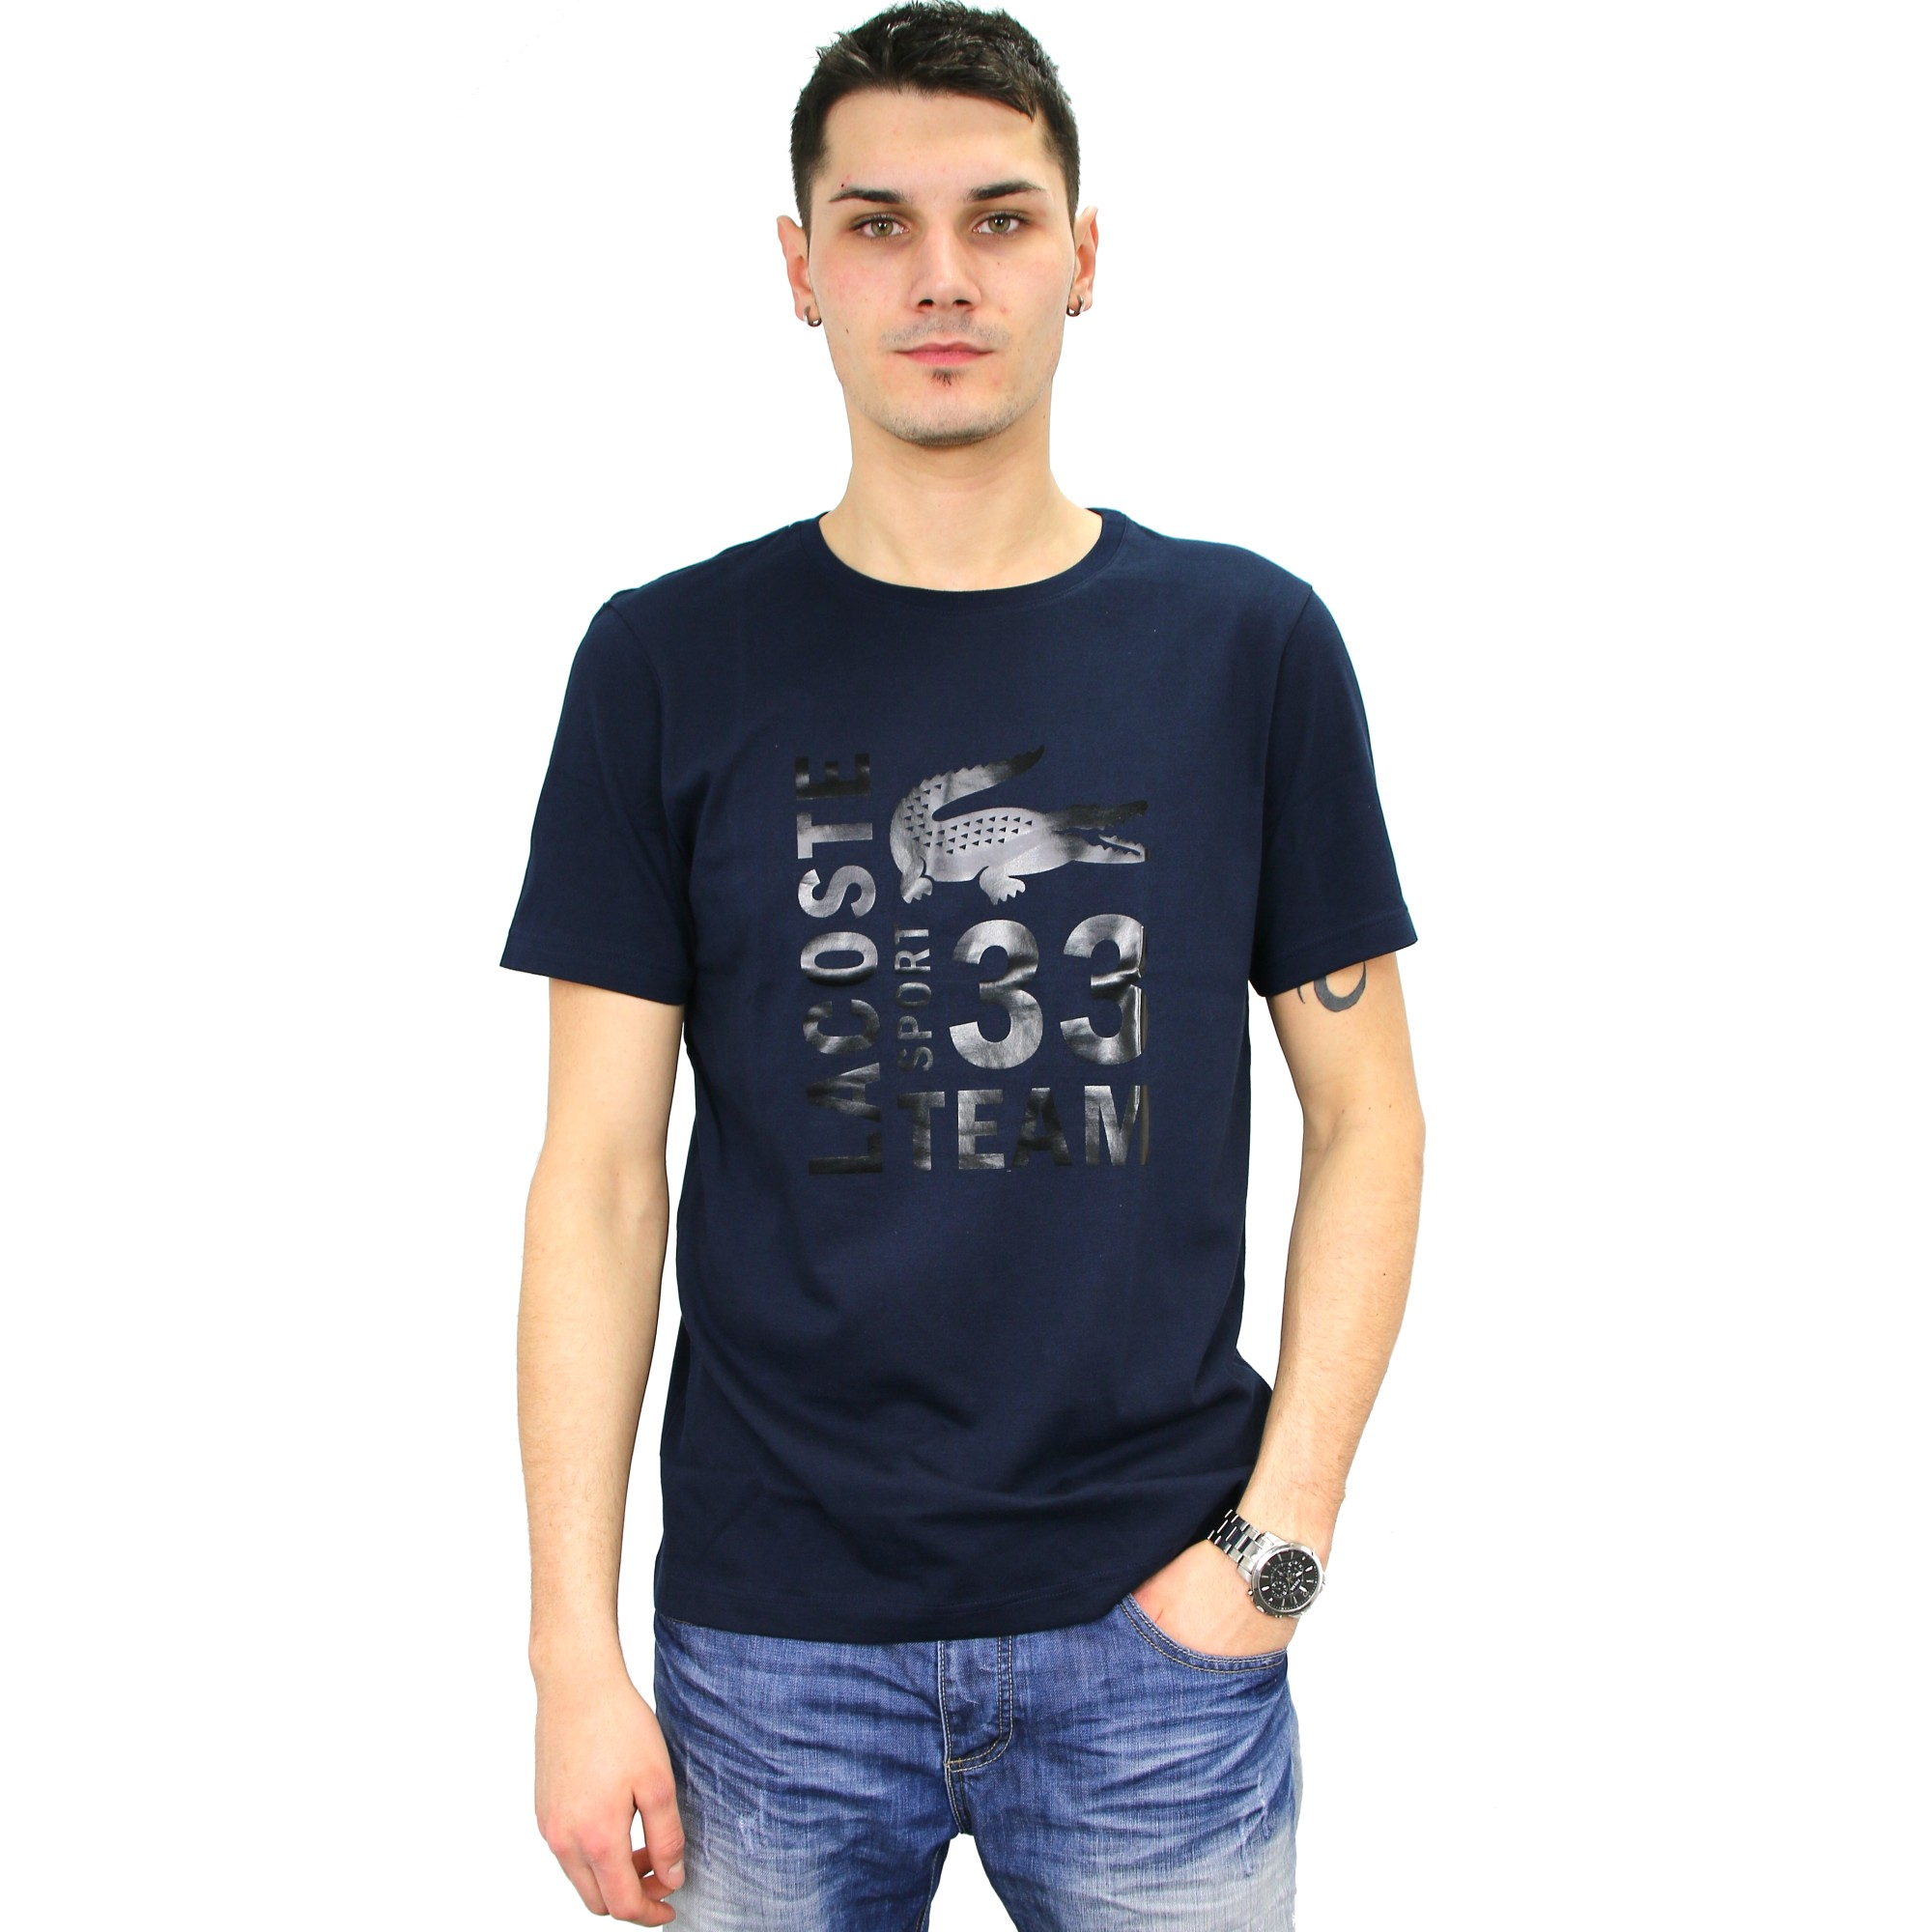 lacoste sport t shirt th7406 men 39 s shirt black white red dark blue. Black Bedroom Furniture Sets. Home Design Ideas